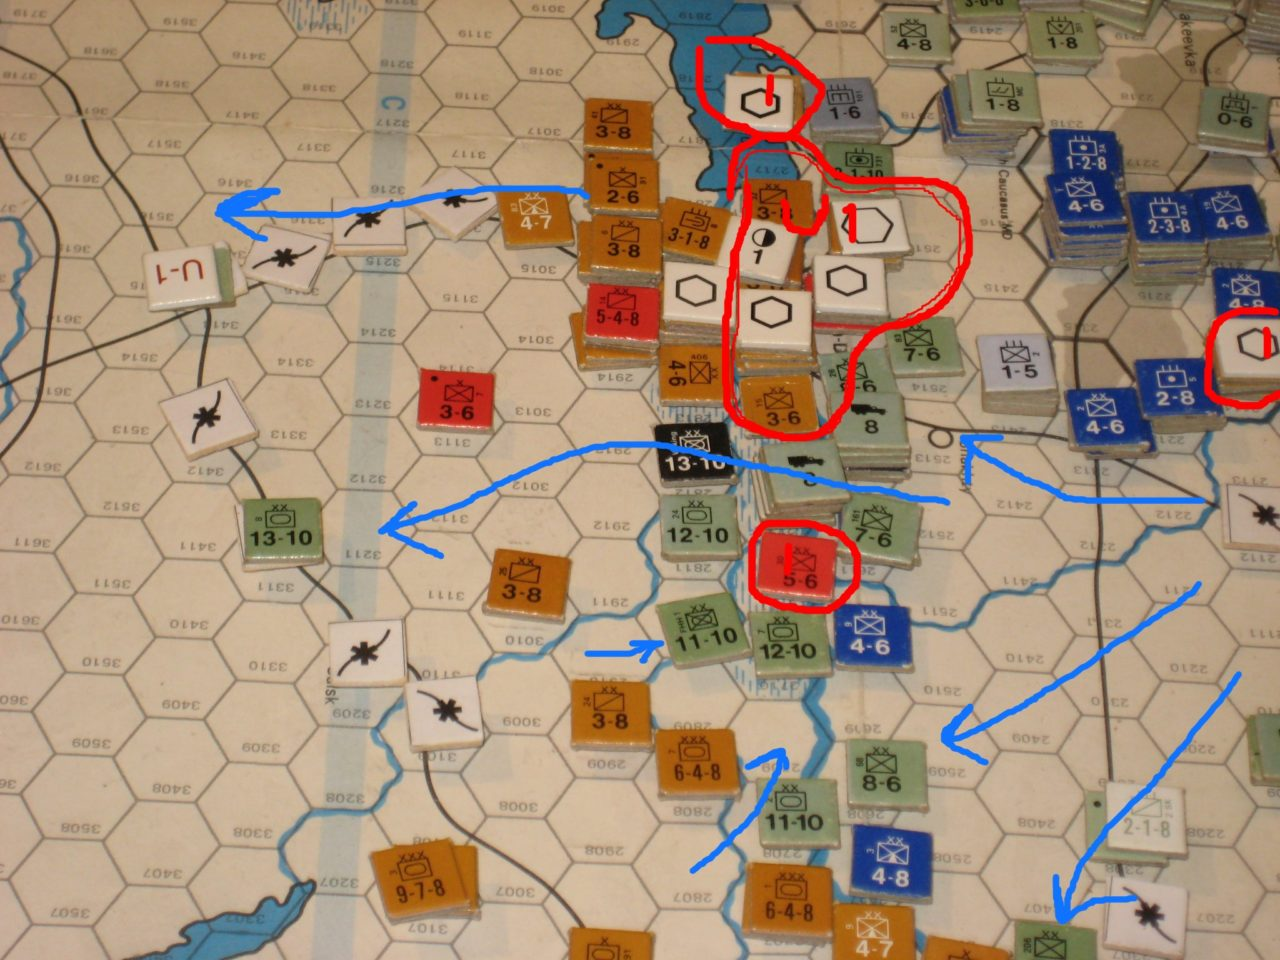 The Axis pushes past Rostov